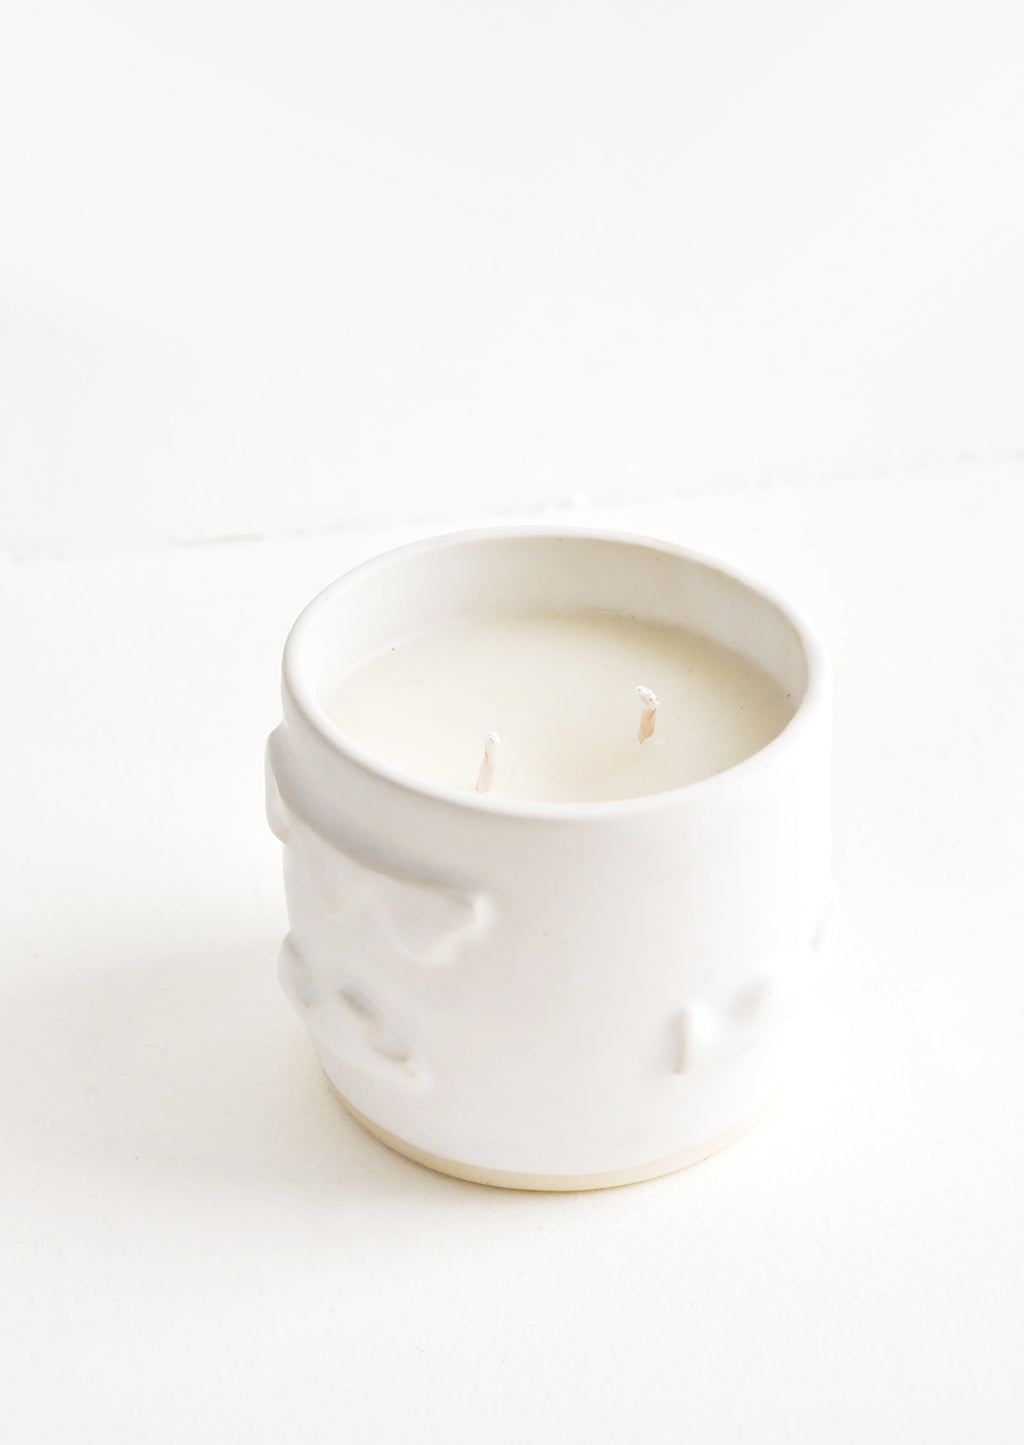 Arboretum: A candle in a white ceramic container affixed with three dimensional squiggles.